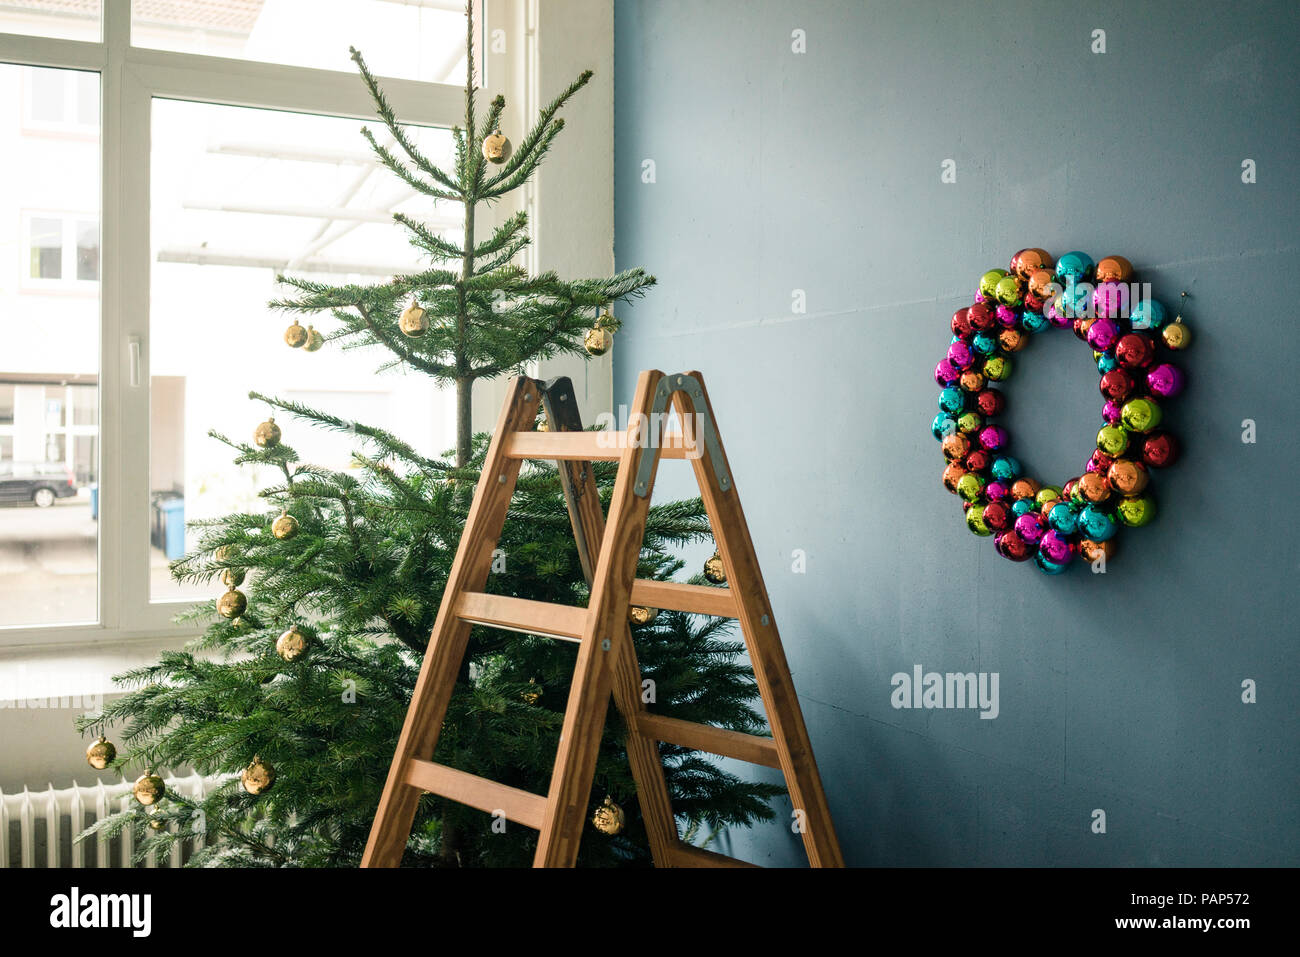 Ladder Christmas Tree.Christmas Tree Christmas Wreath And Ladder In A Loft Stock